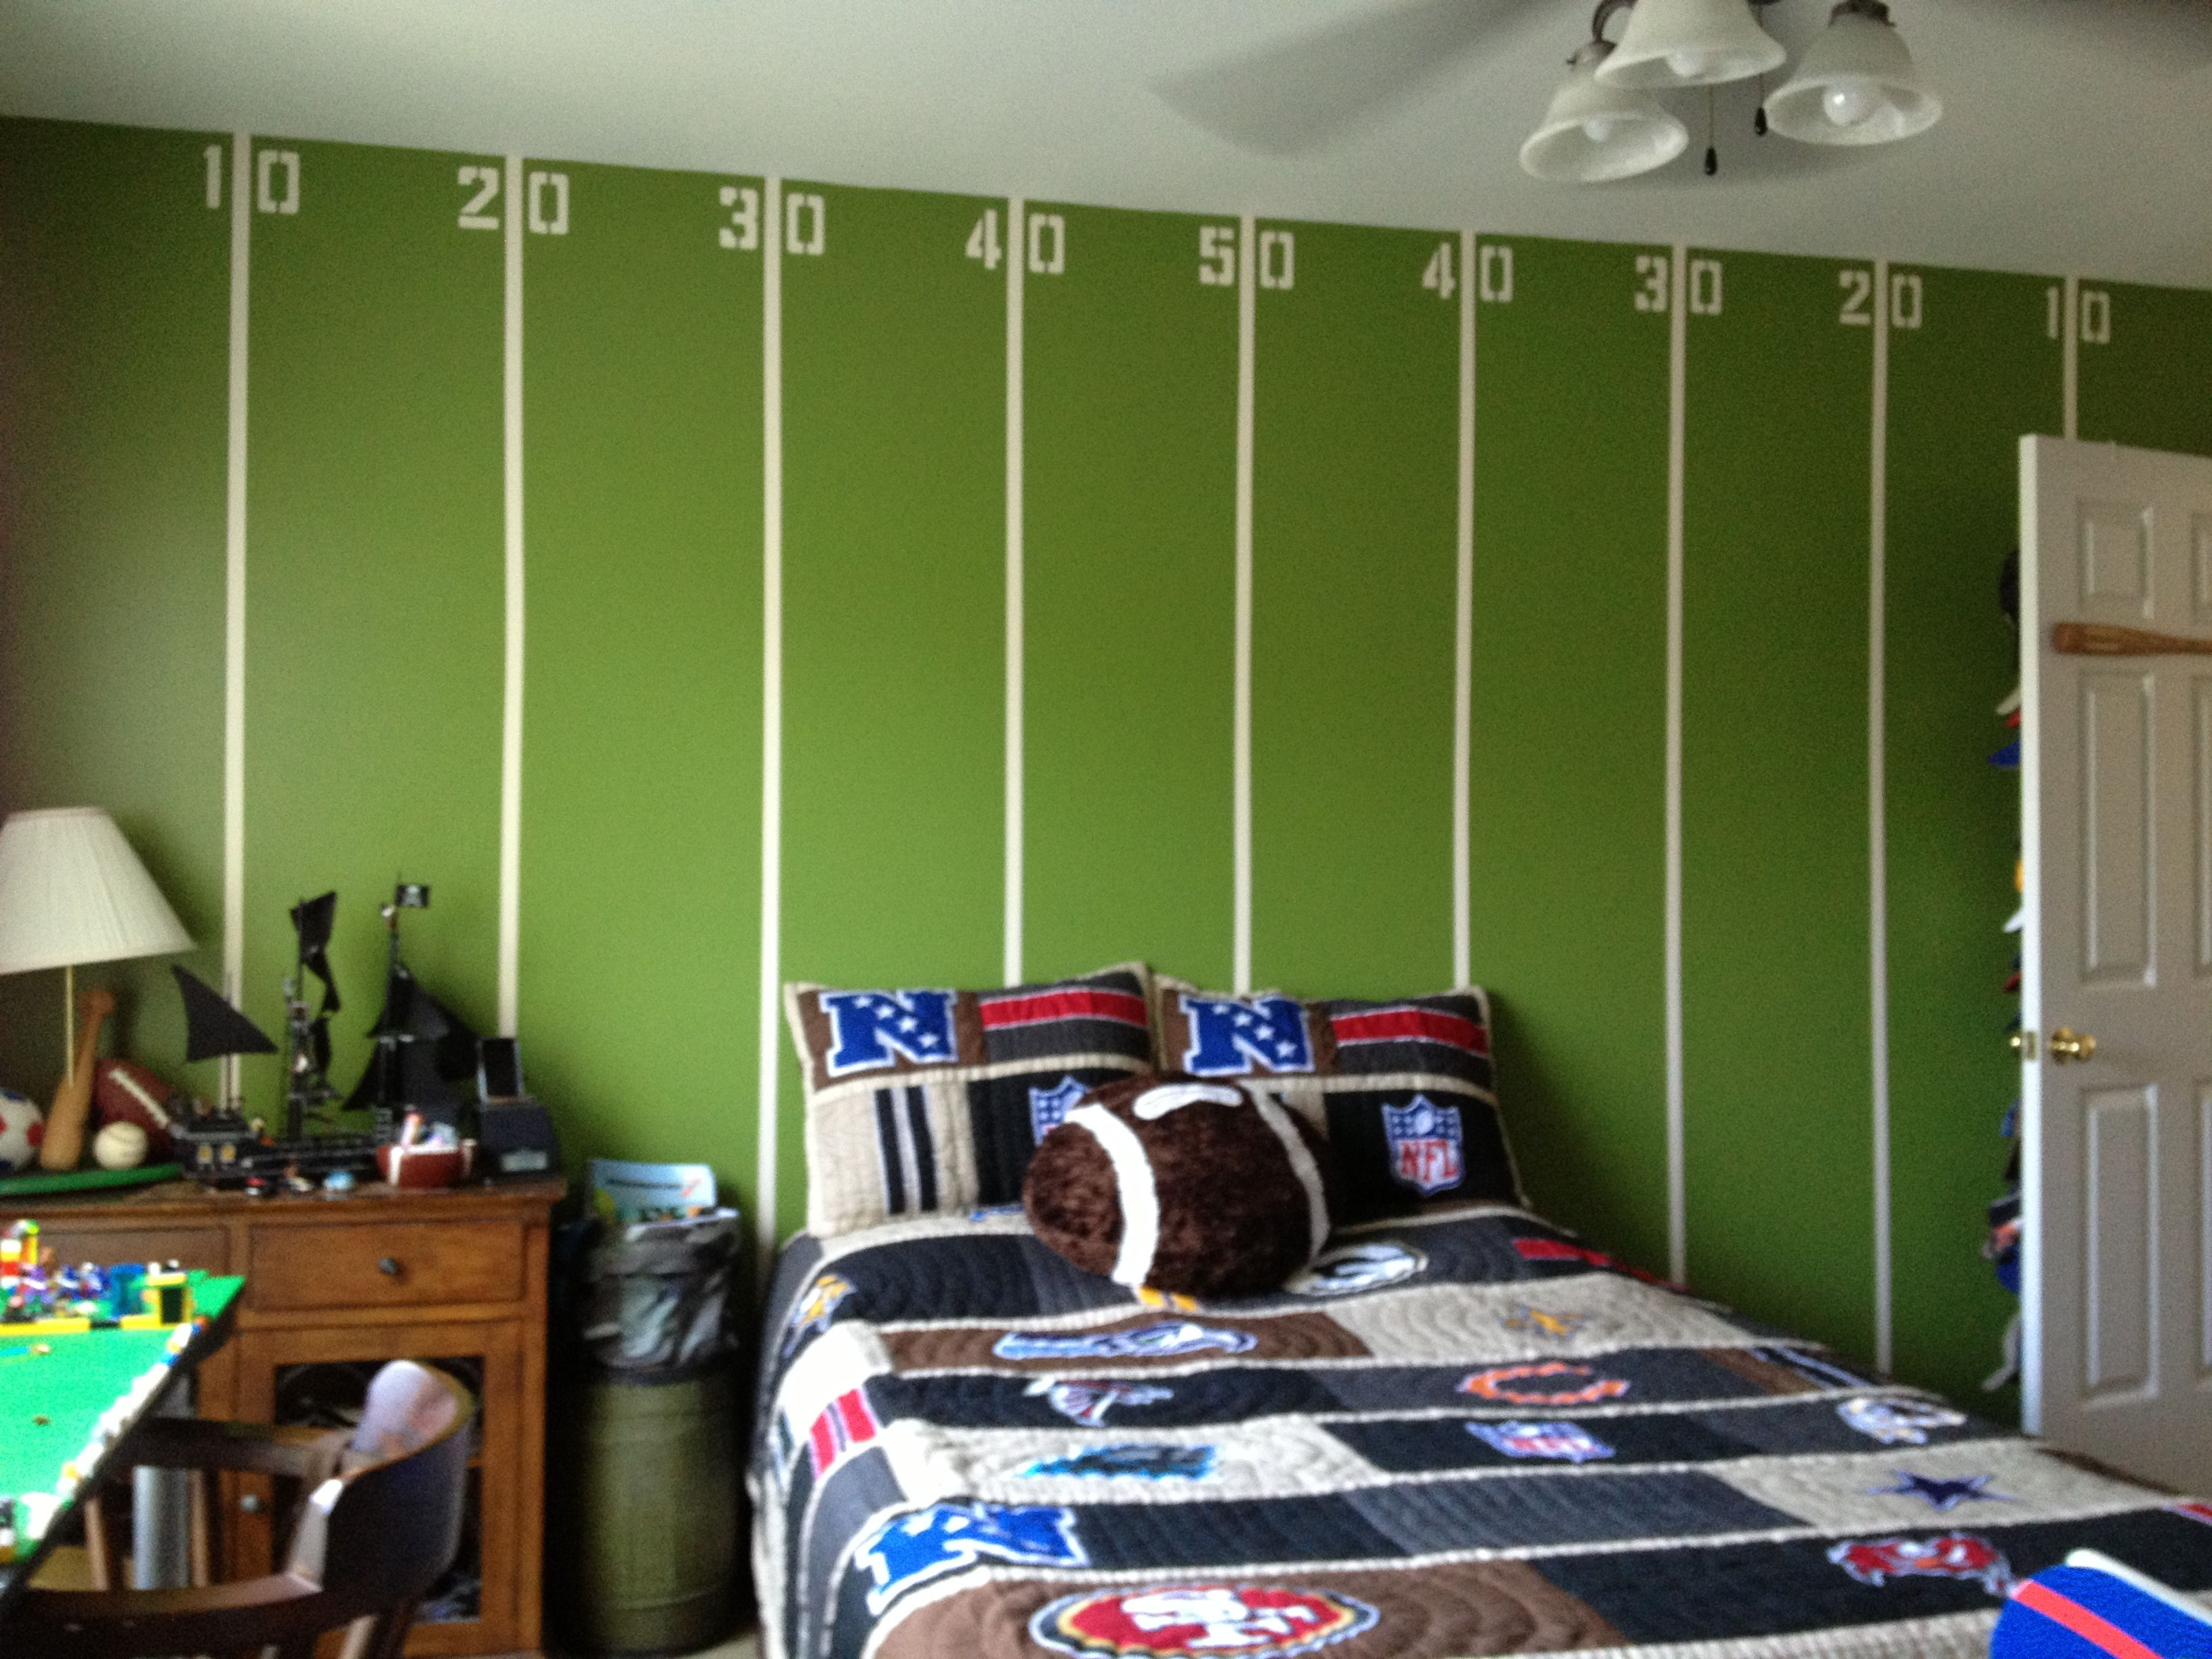 Boys Sports Bedroom Ideas best 25 boys football room ideas on pinterest boy sports rooms for